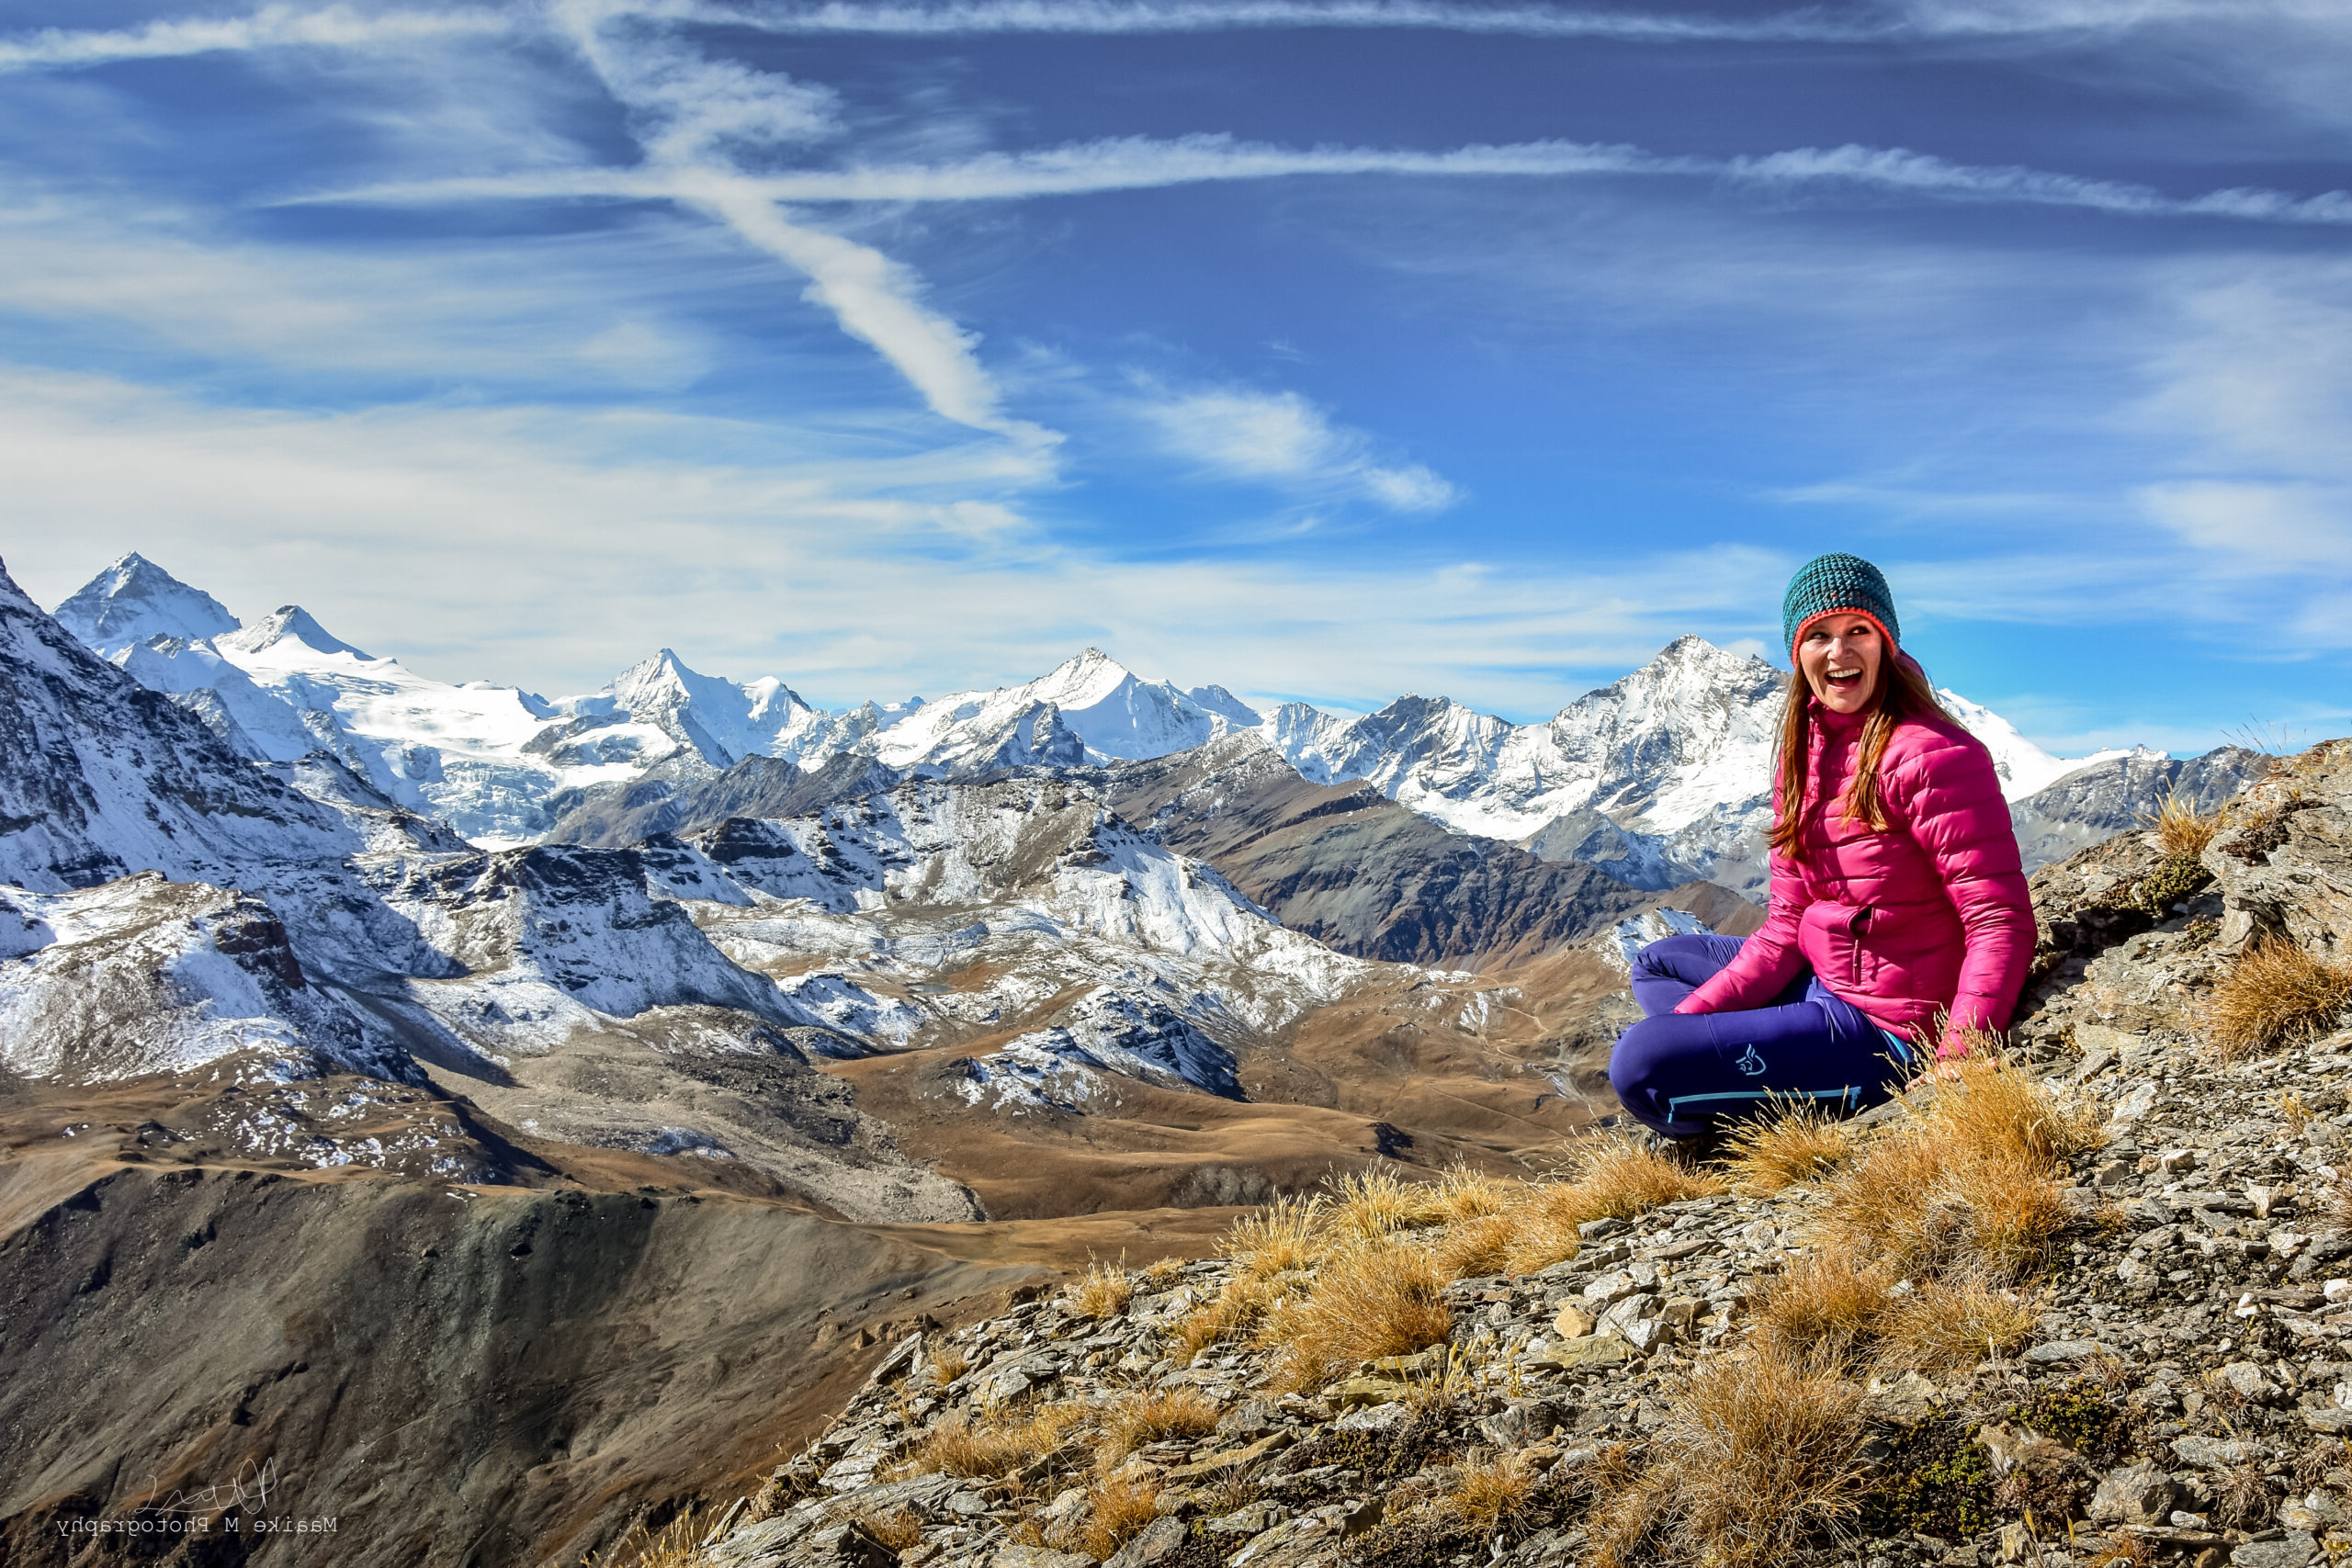 Maaike Mayor enjoying the view from a 3000m summit in the swiss alps